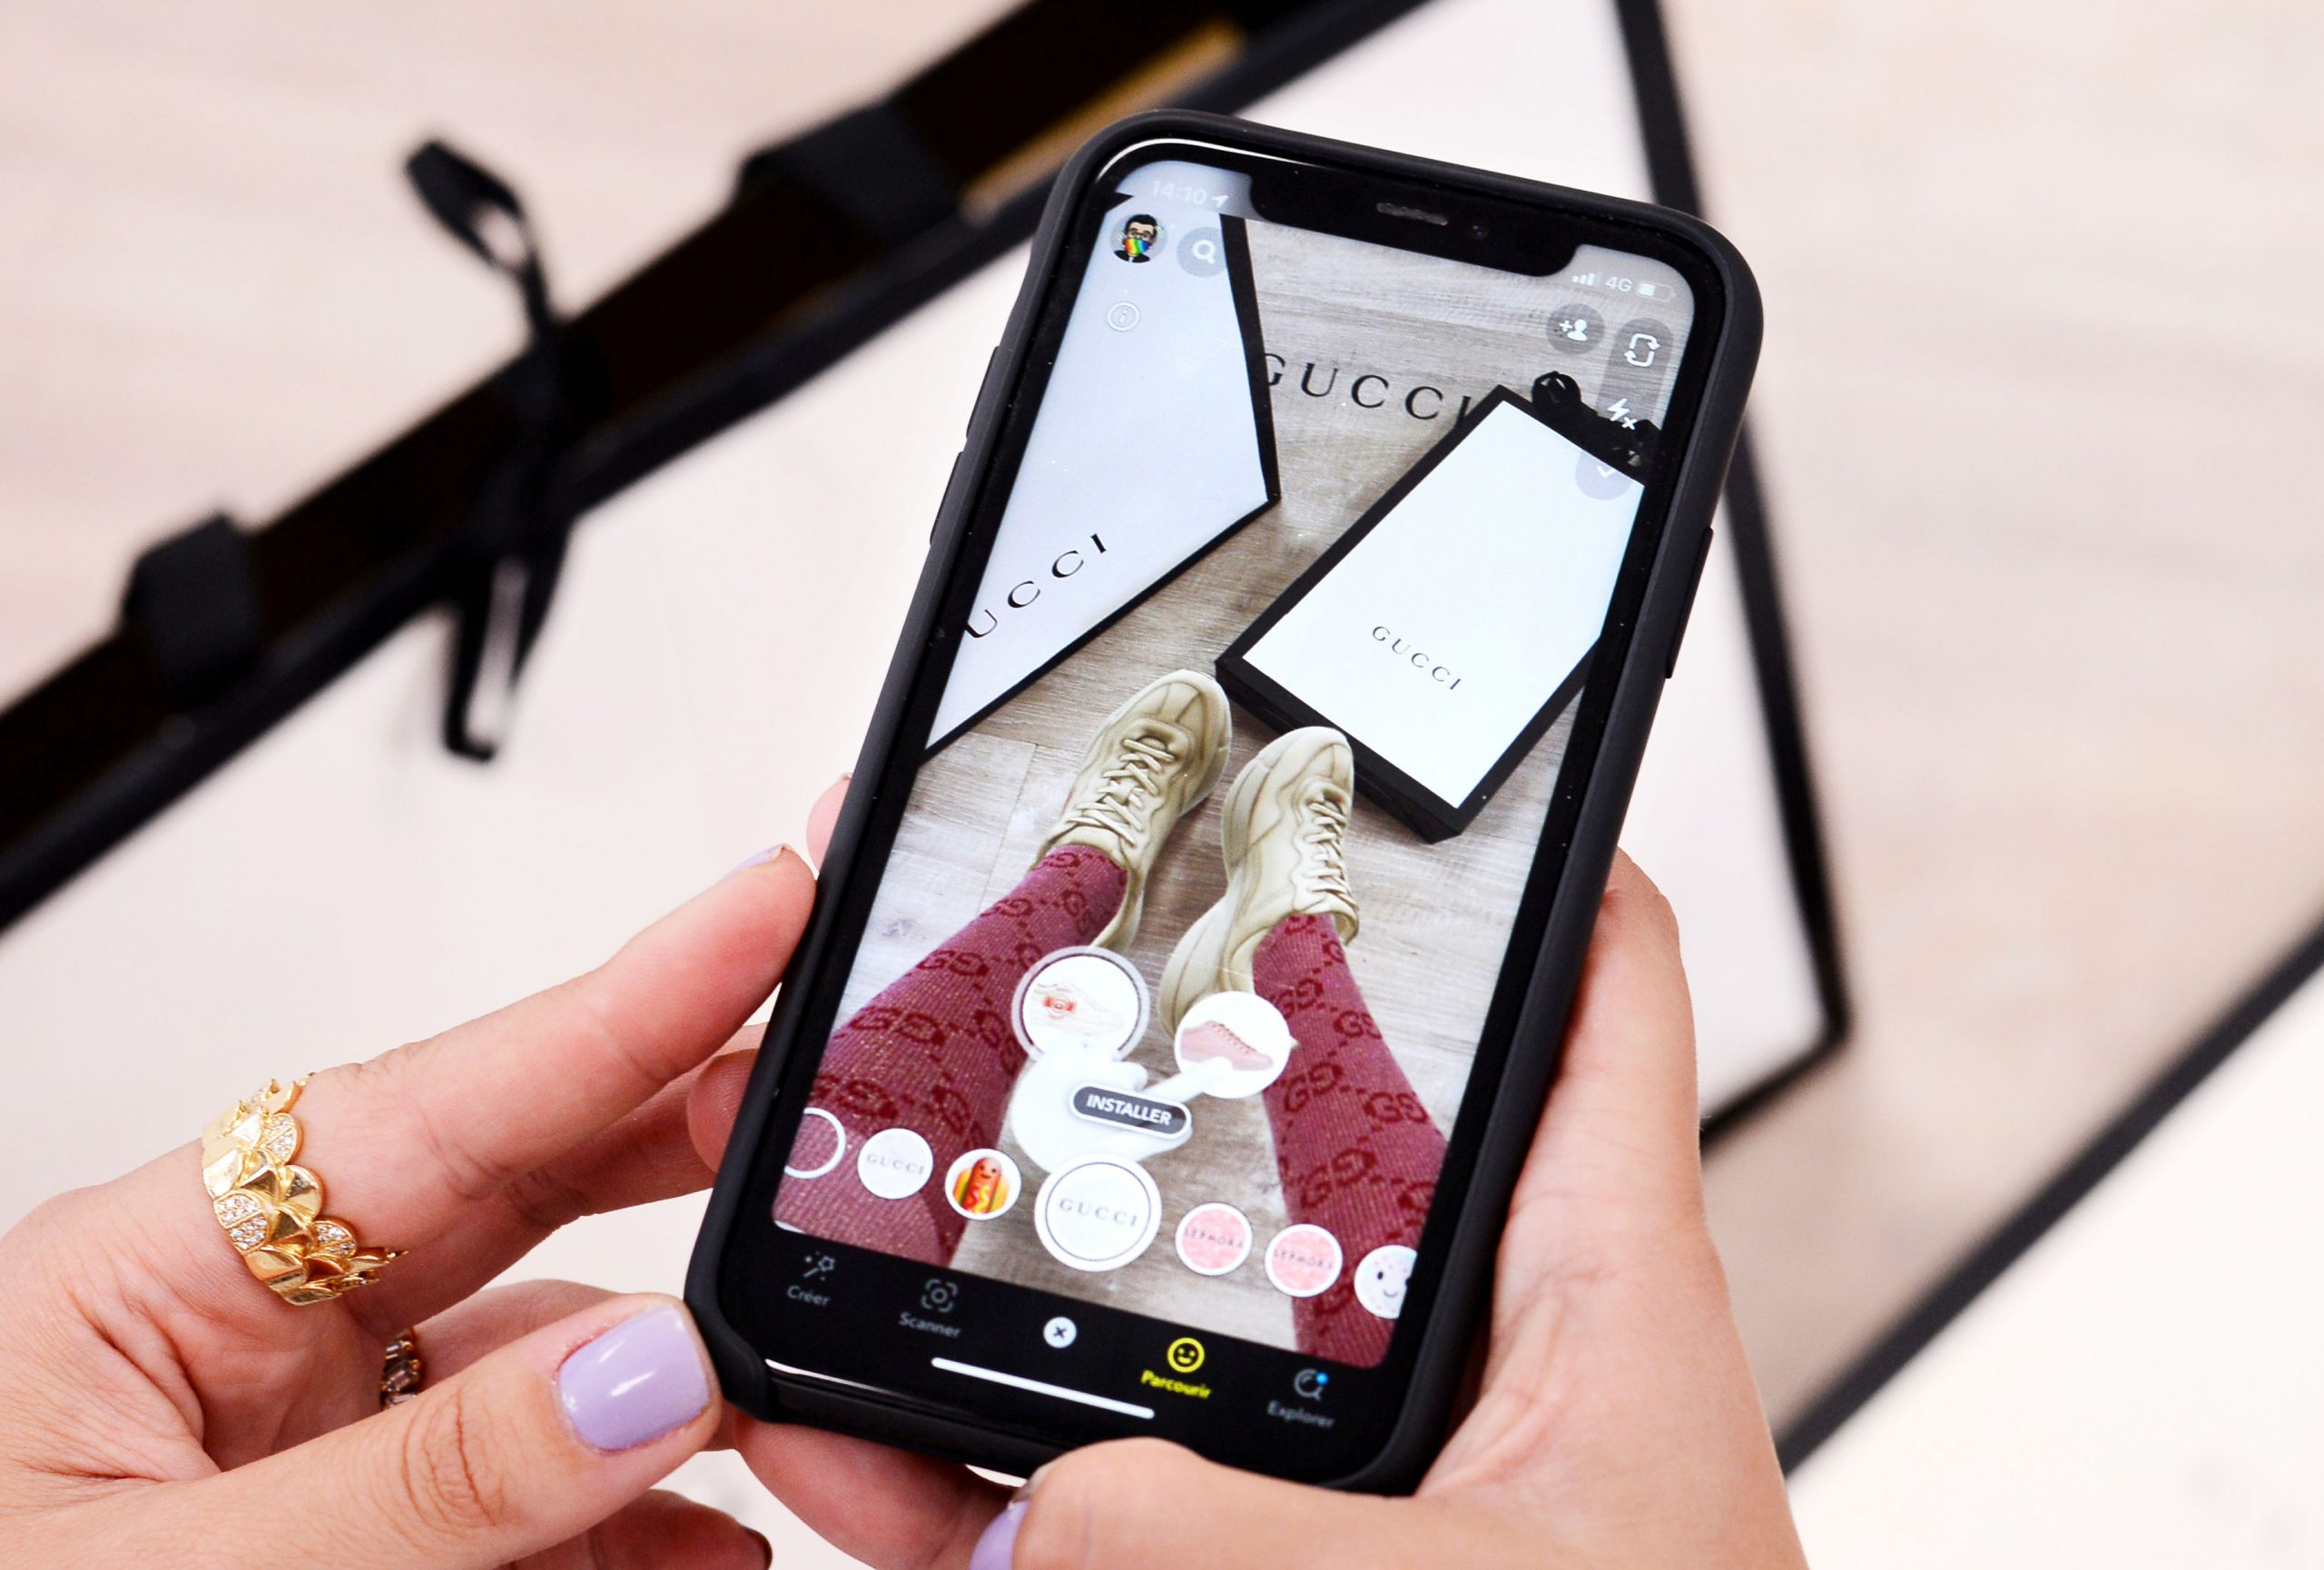 gucci AR technology, gucci new try on AR app, gucci AR filter on Snapchat, web app ideas